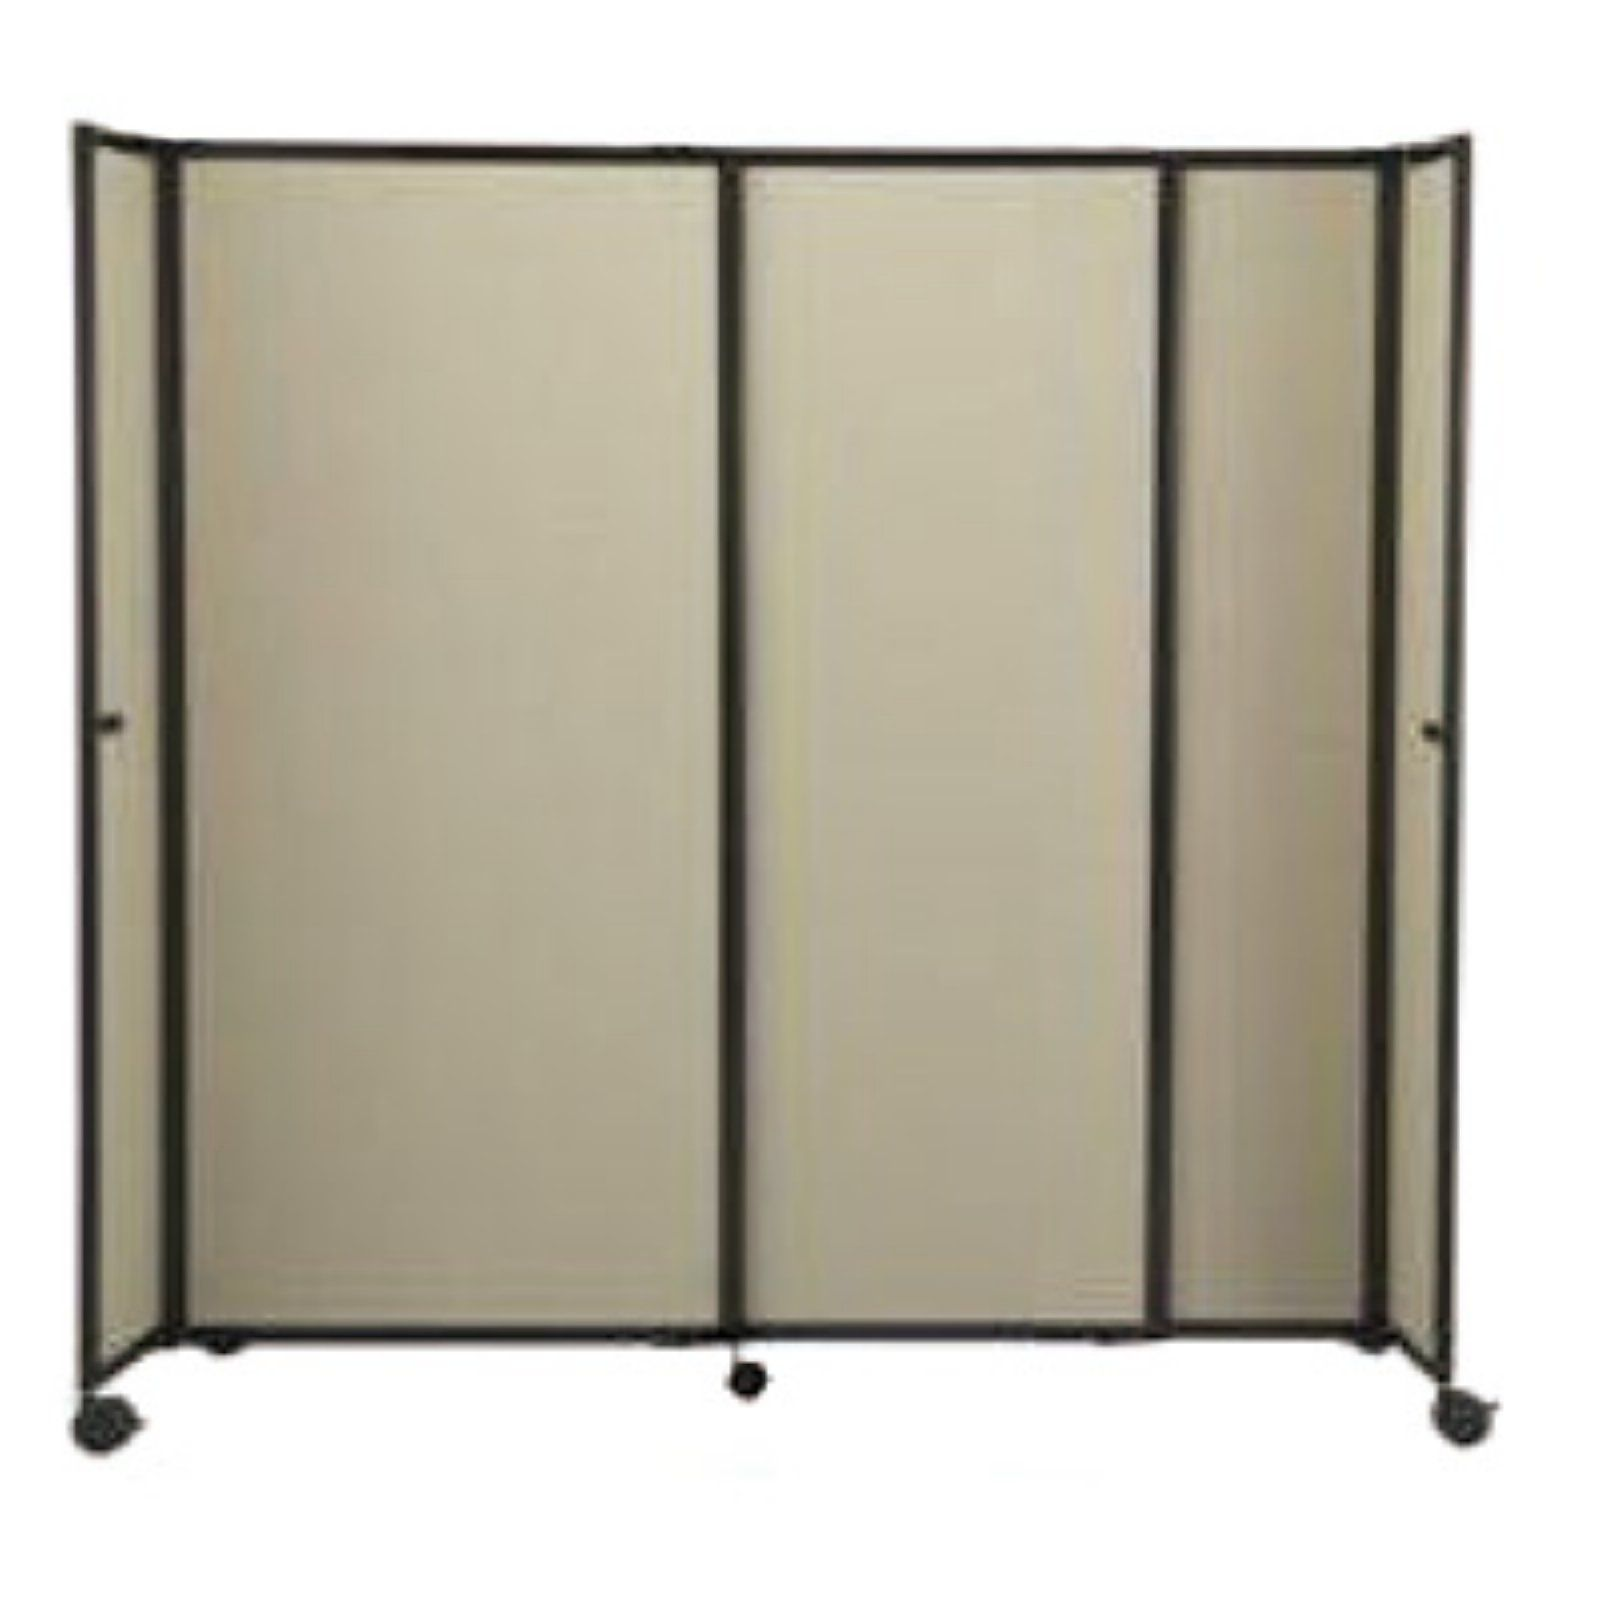 Versare 7 Foot 2 Inch Wide Straightwall Mobile Accordion Room Divider 360 Temporary Room